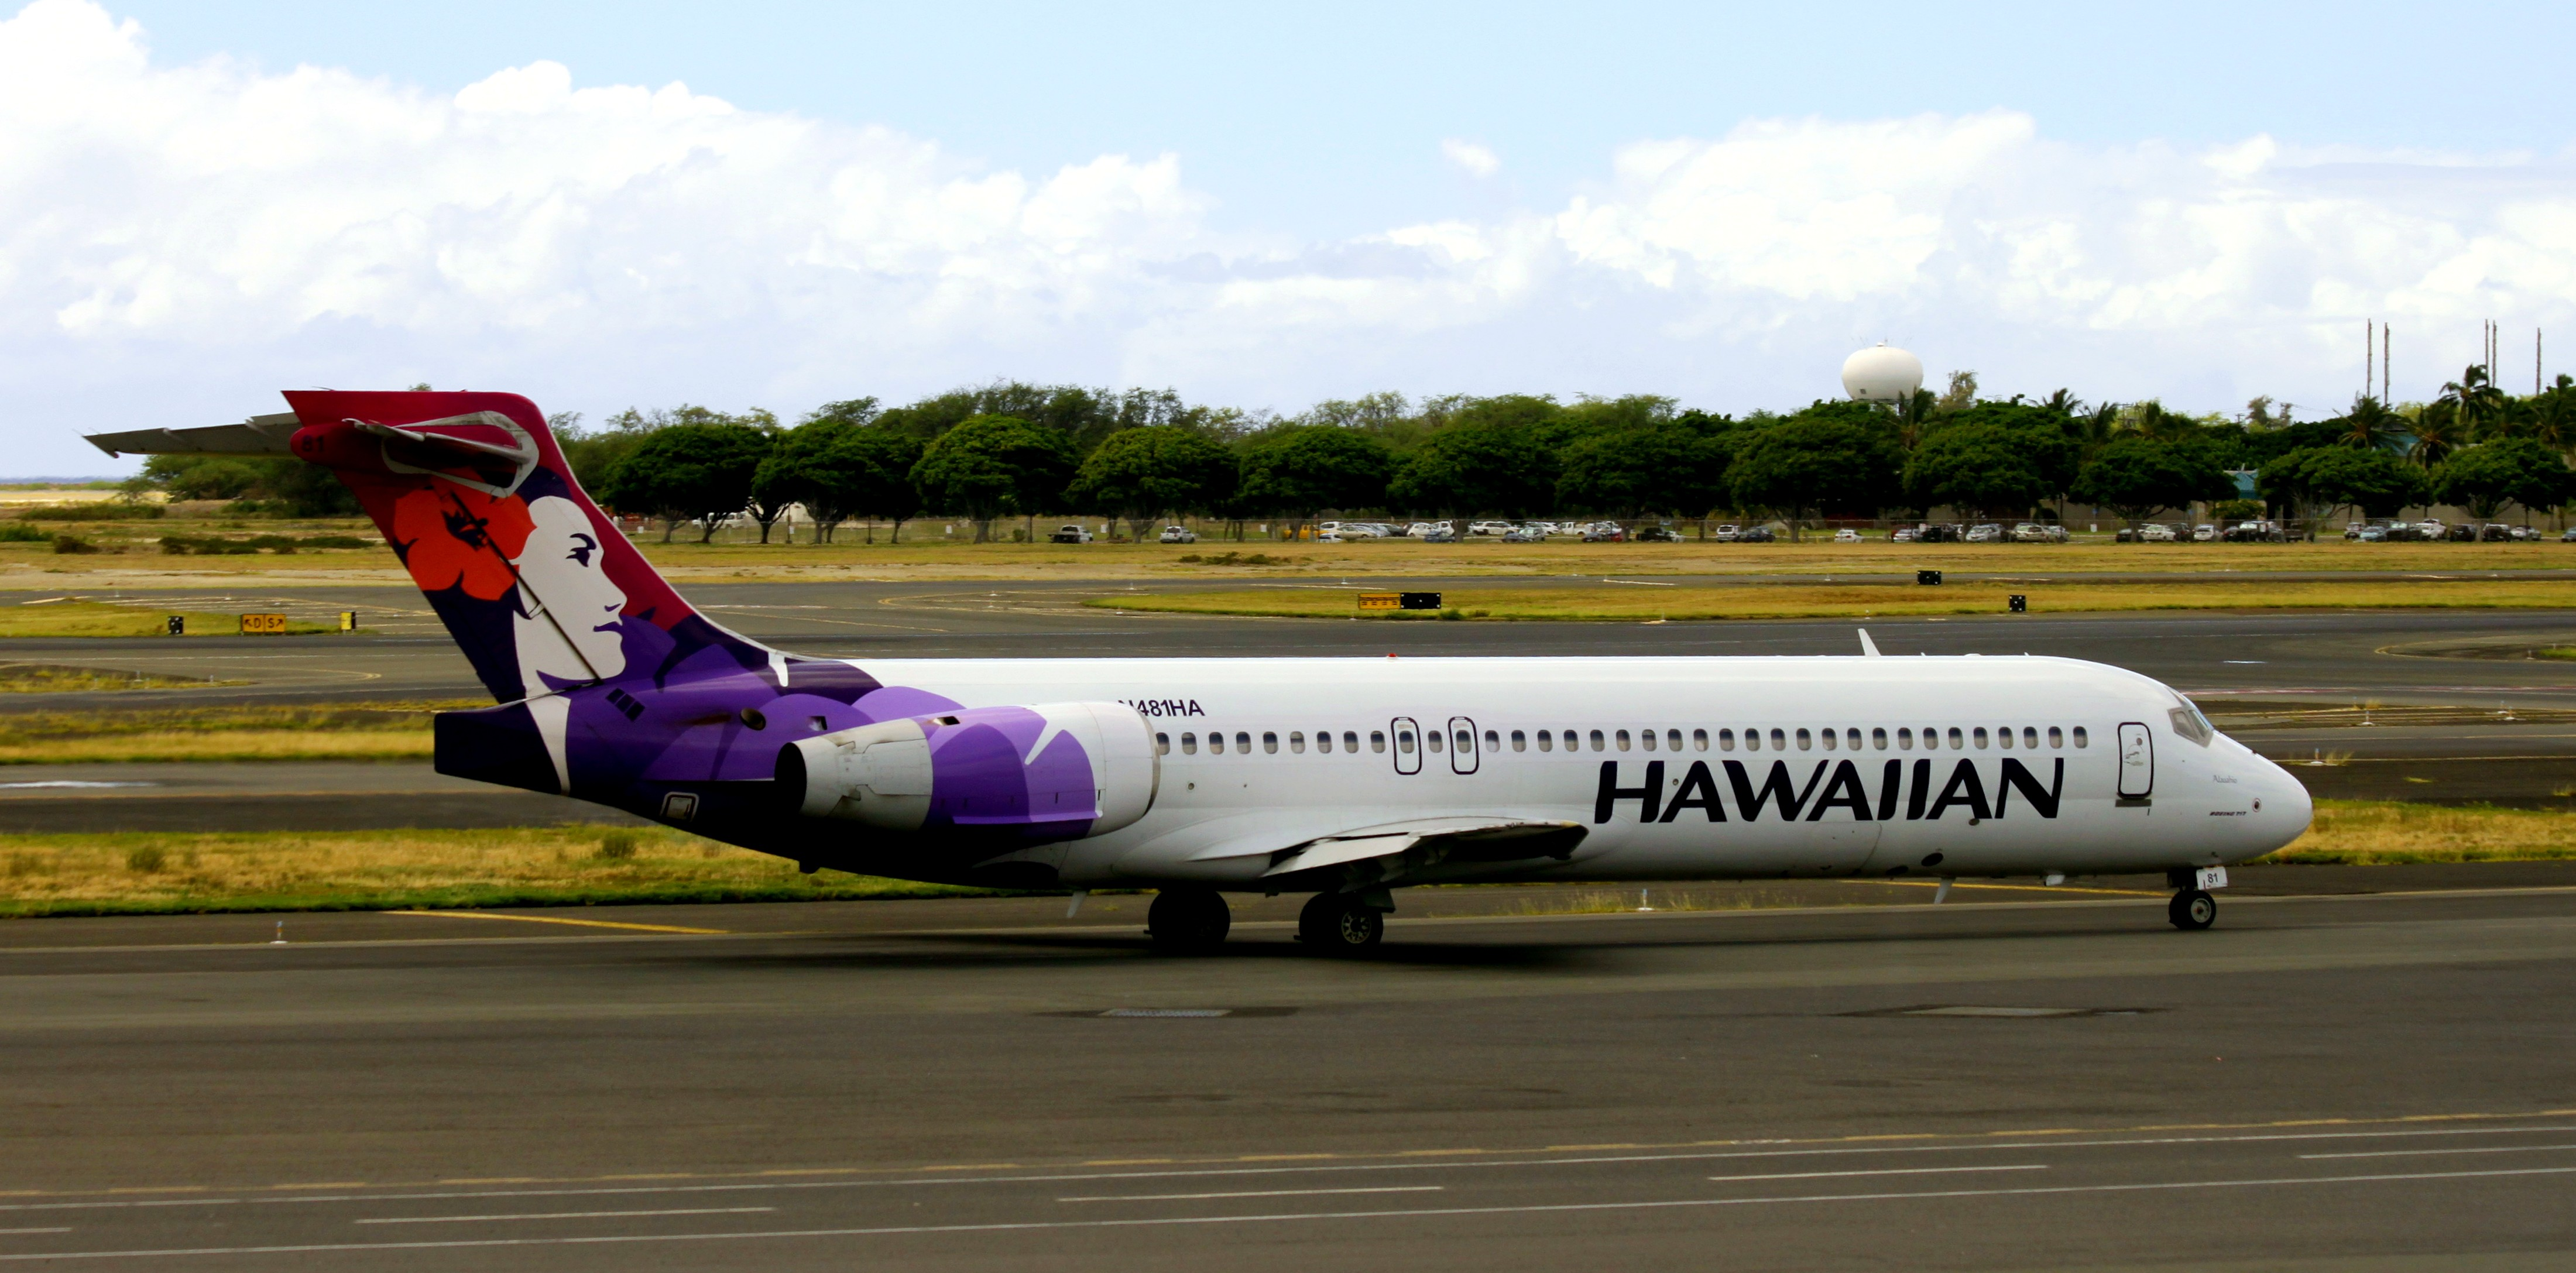 File:N481HA Boeing 717-22A Hawaiian Airlines (15622166268).jpg